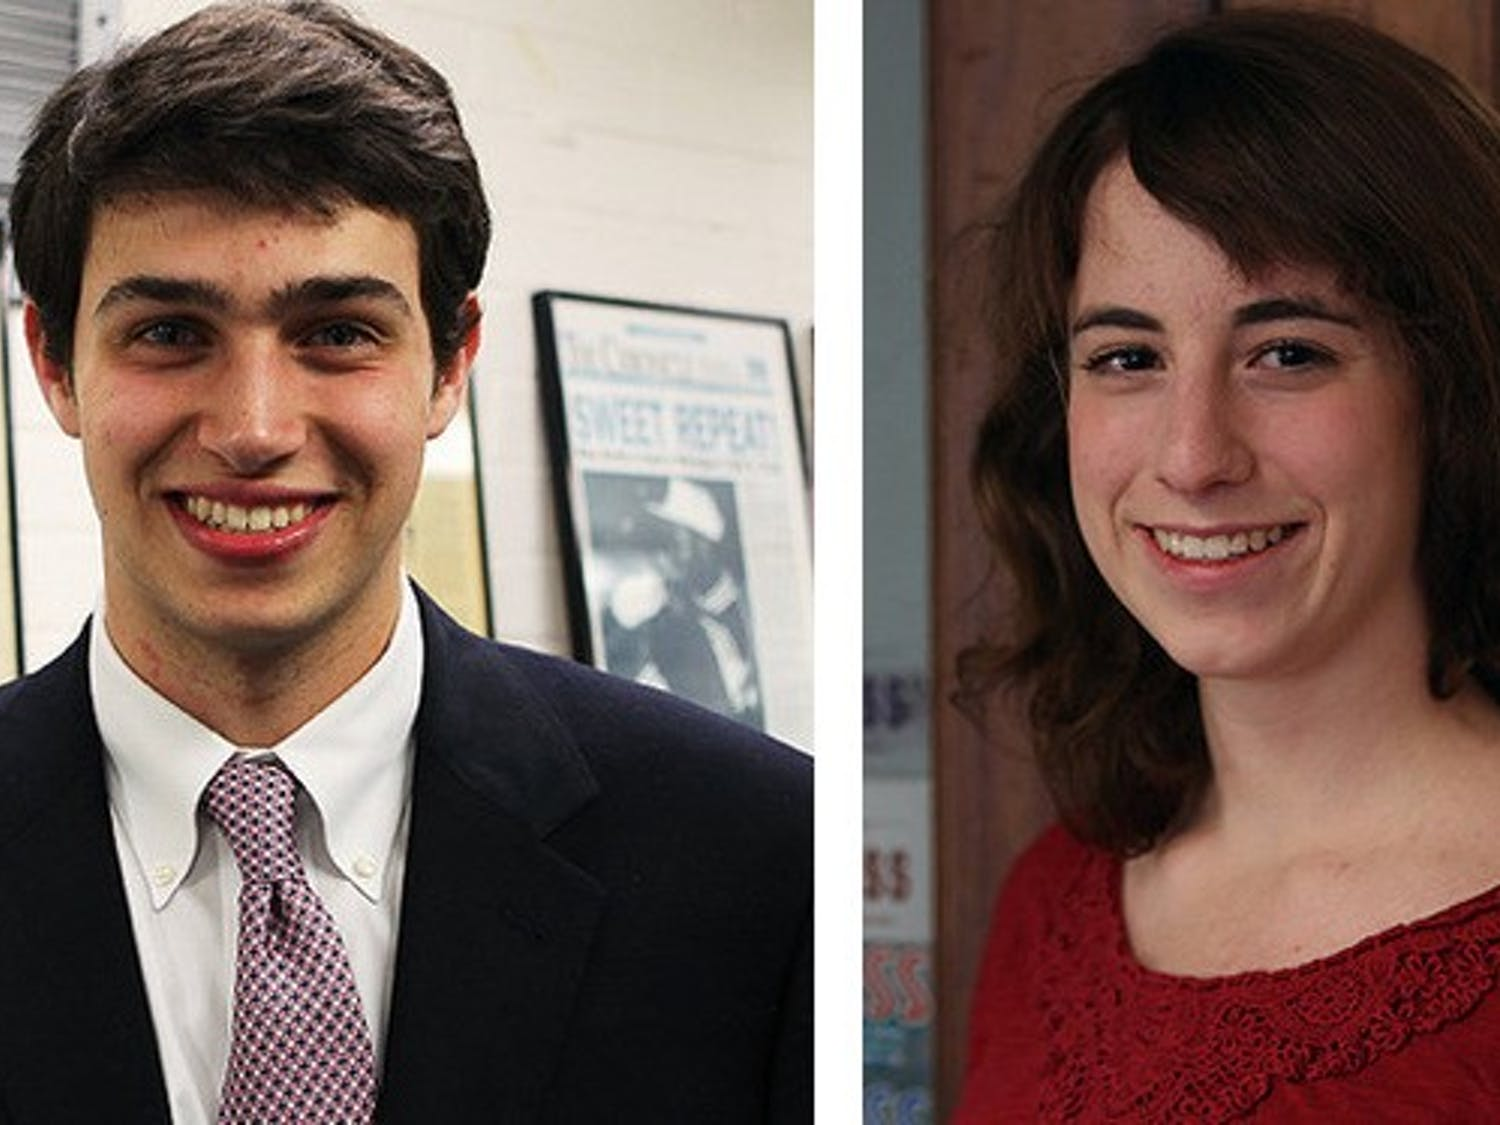 Towerview's fearless leaders: Daniel Carp and Danielle Muoio